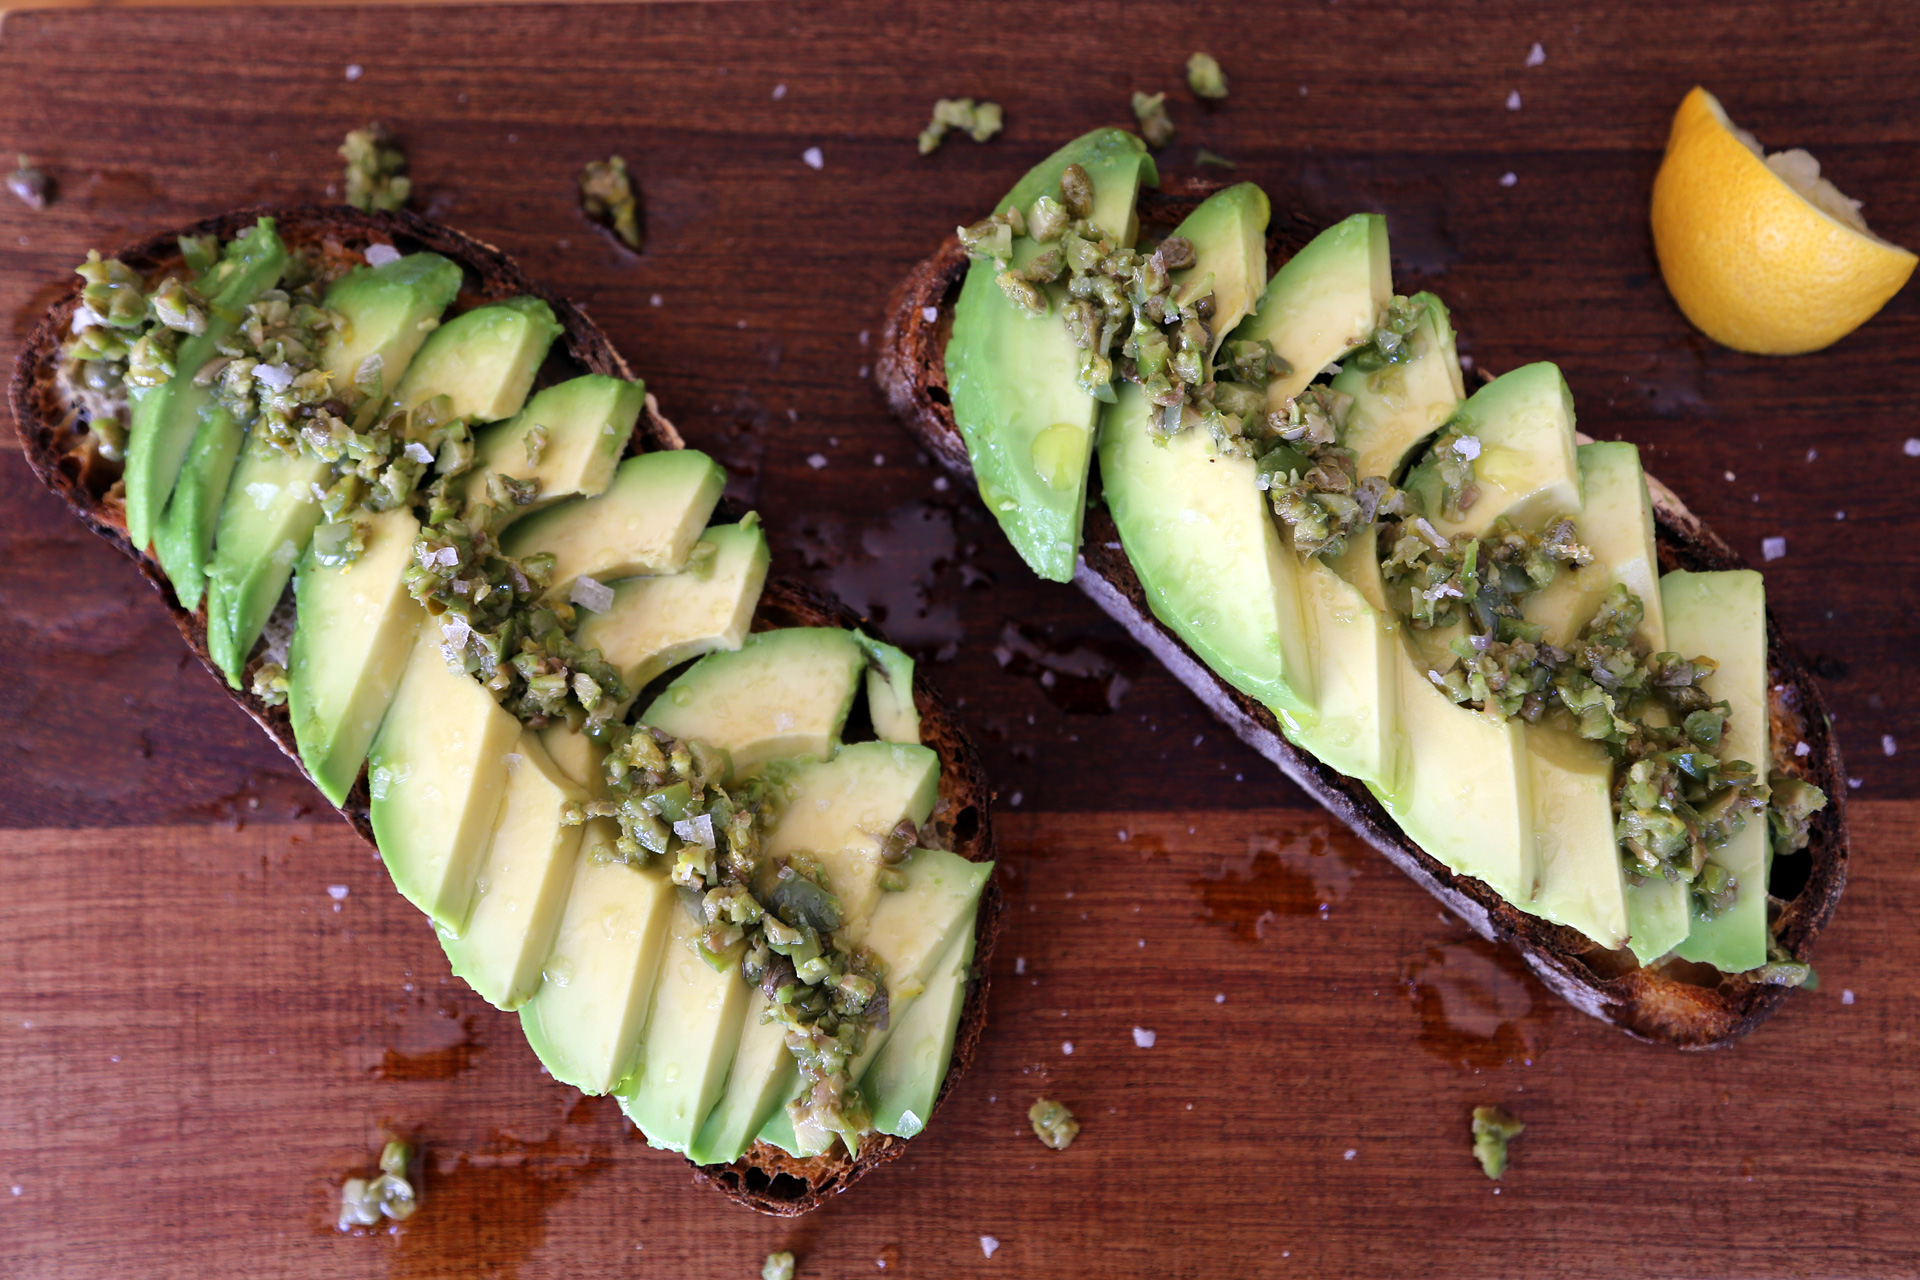 Avocado Toast with Green Olive Relish and Lemon